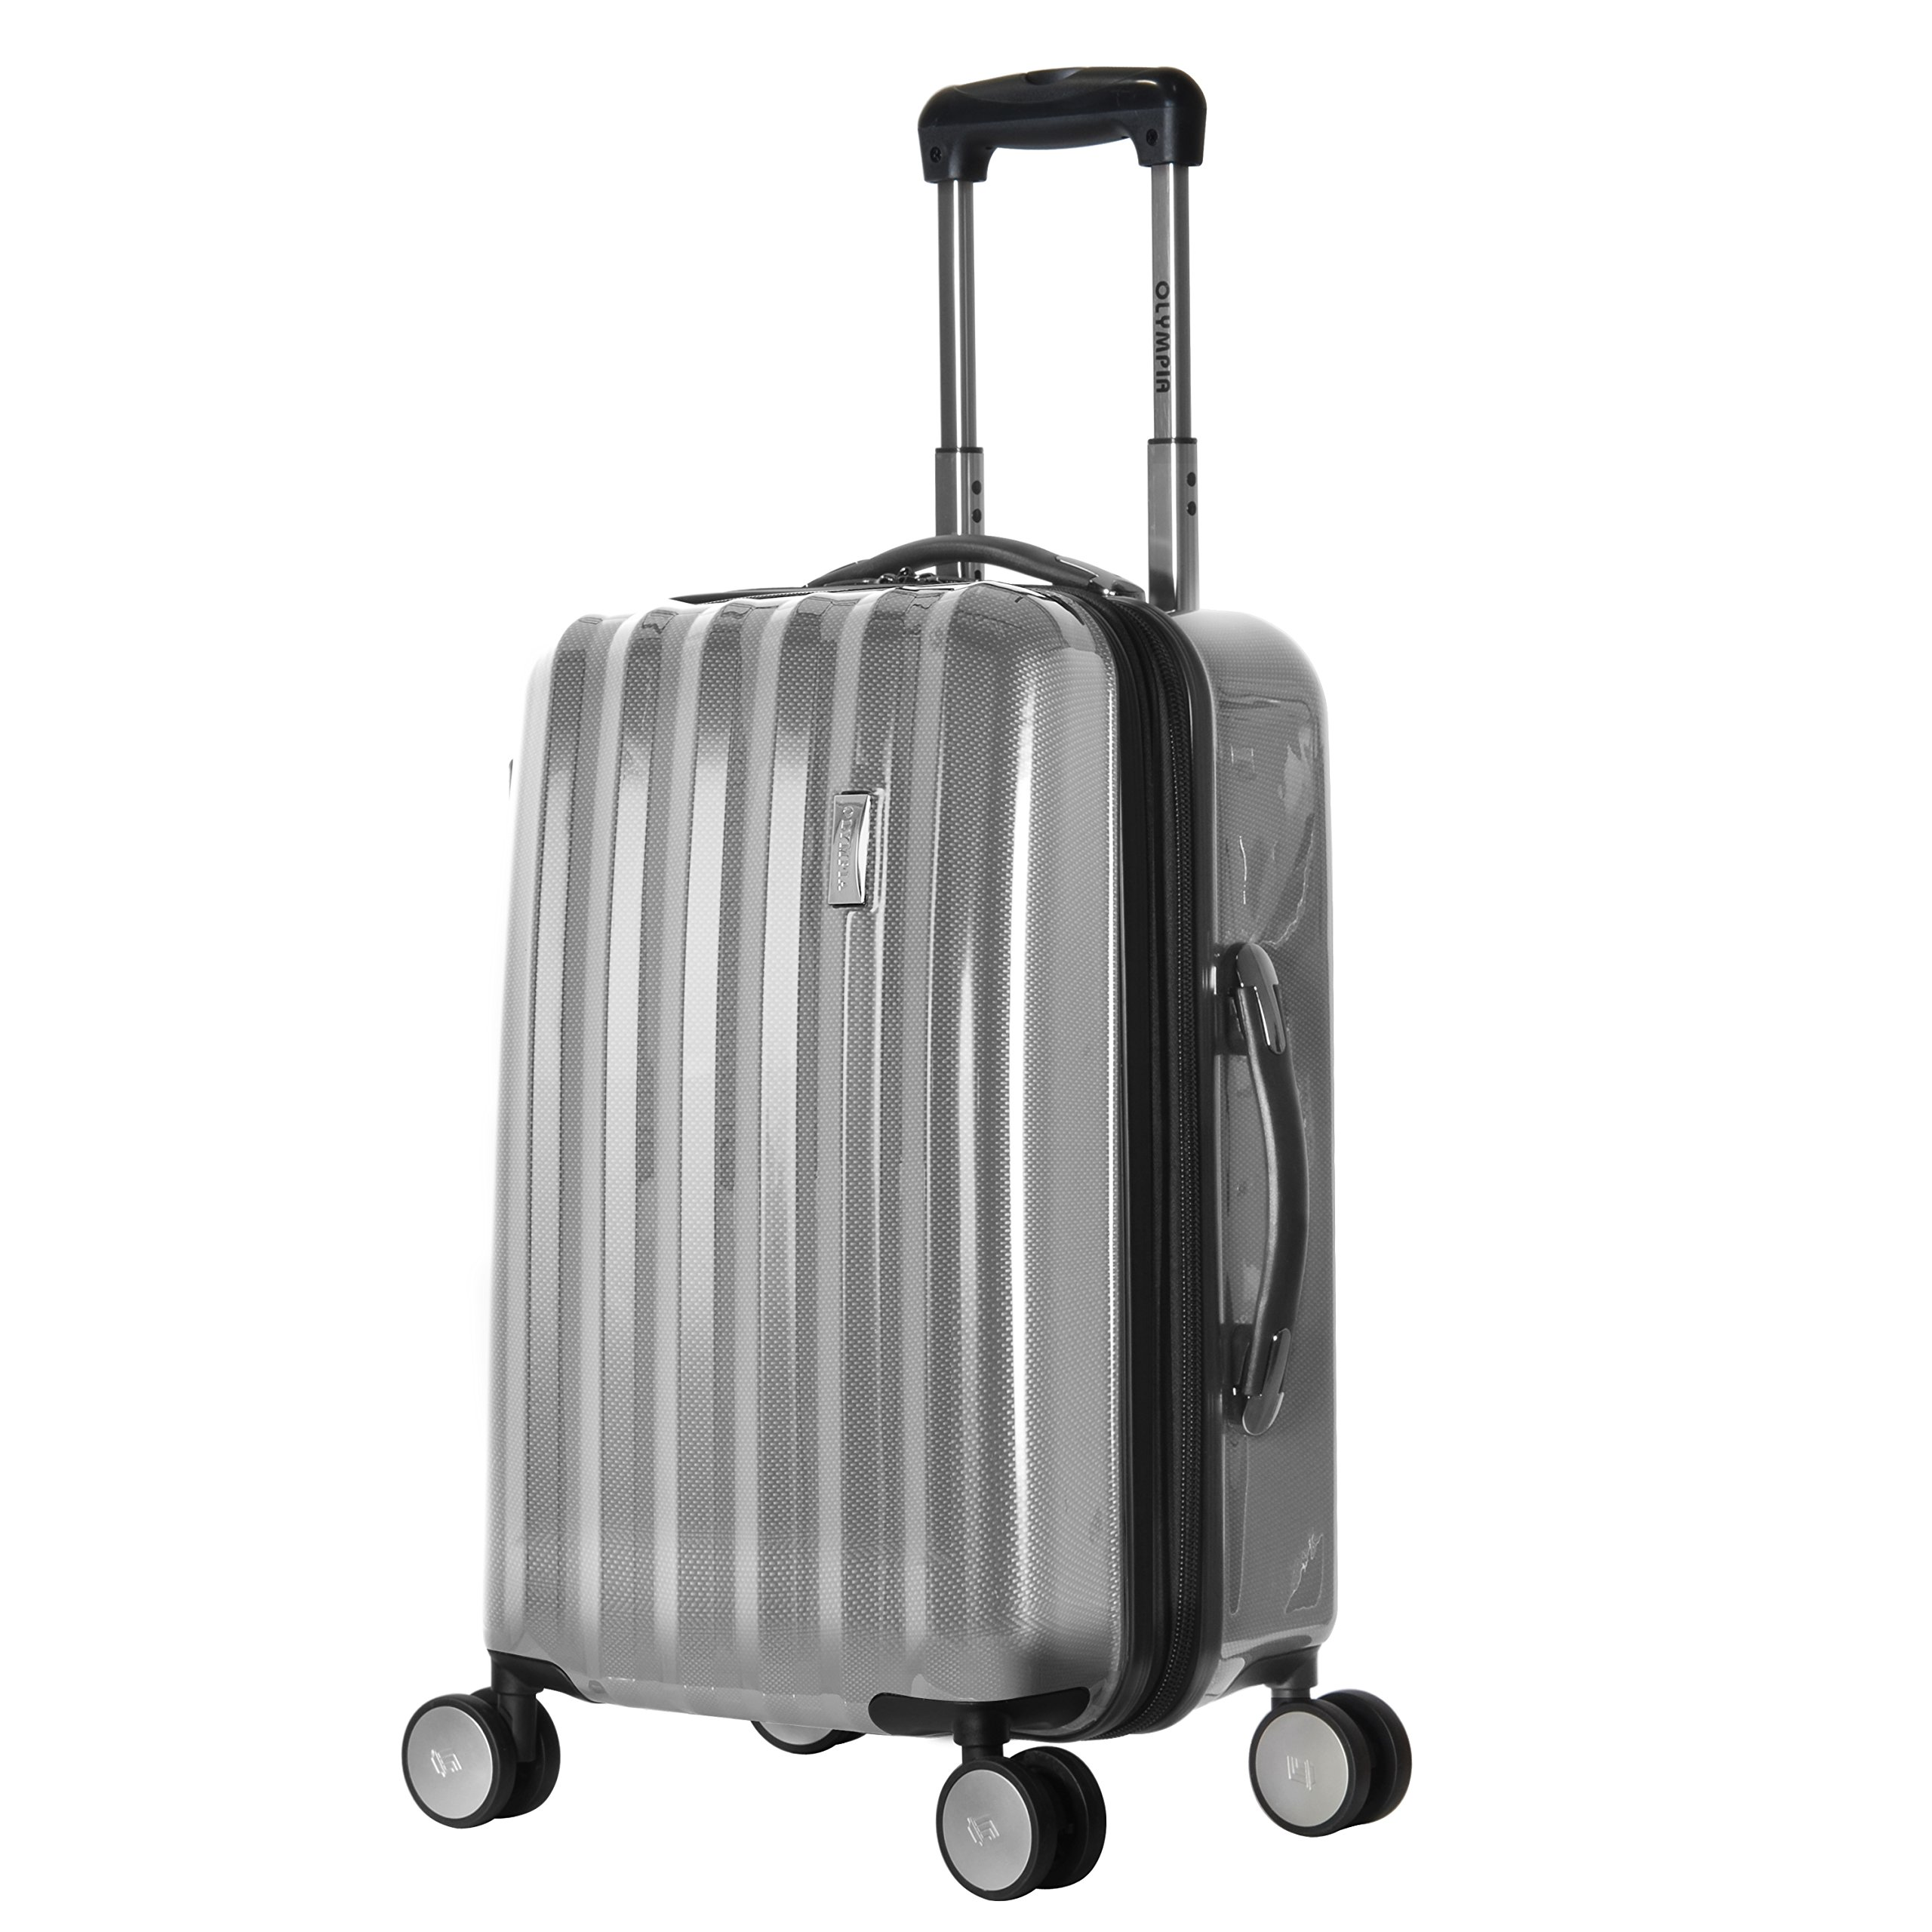 Olympia Titan 21 Inch Expandable Carry-On Hard Case Spinner, Silver, One Size